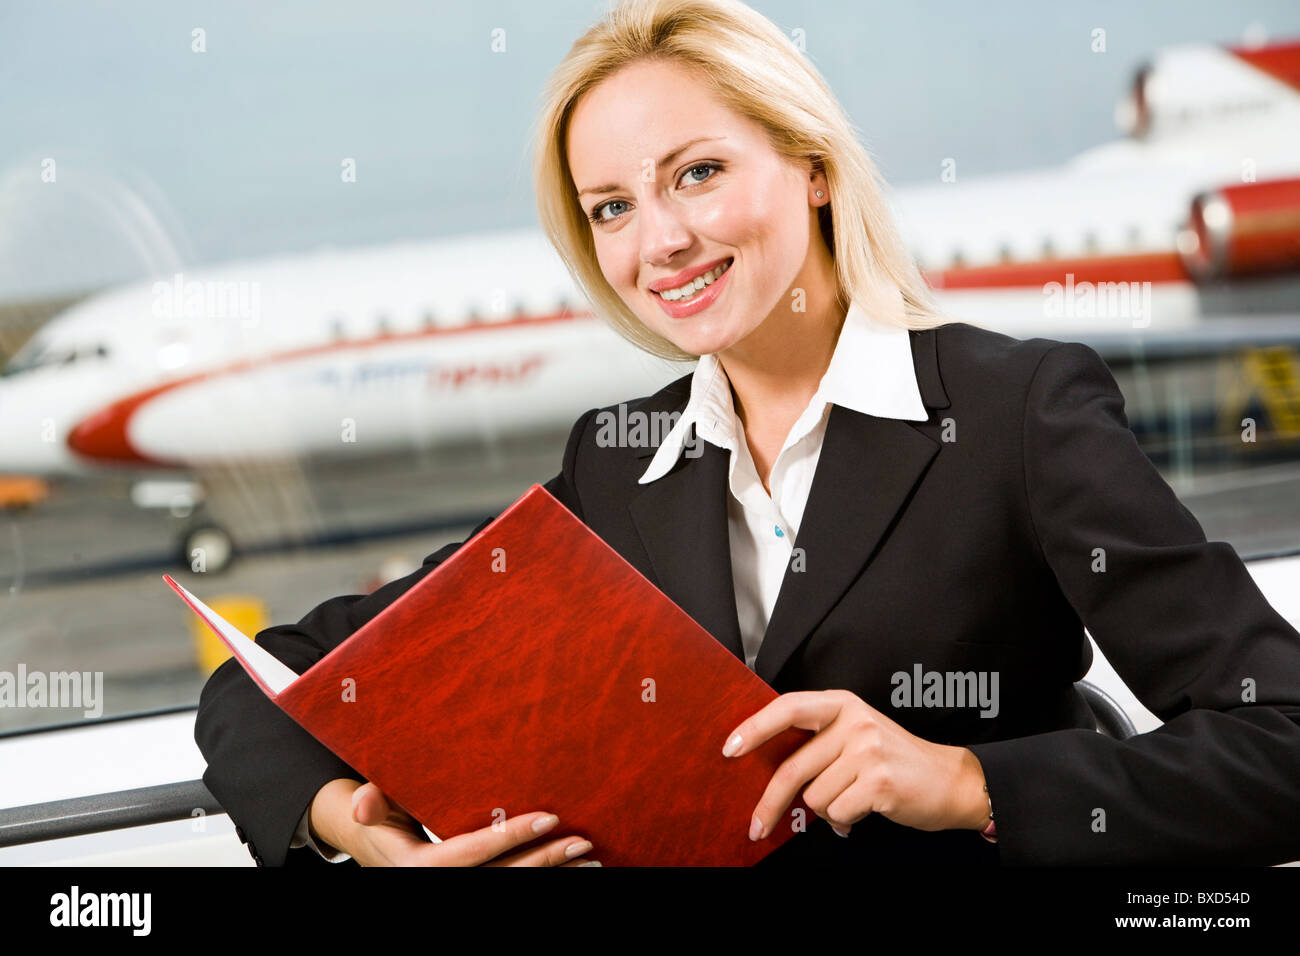 Portrait of highly skilled worker holding the red folder Stock Photo